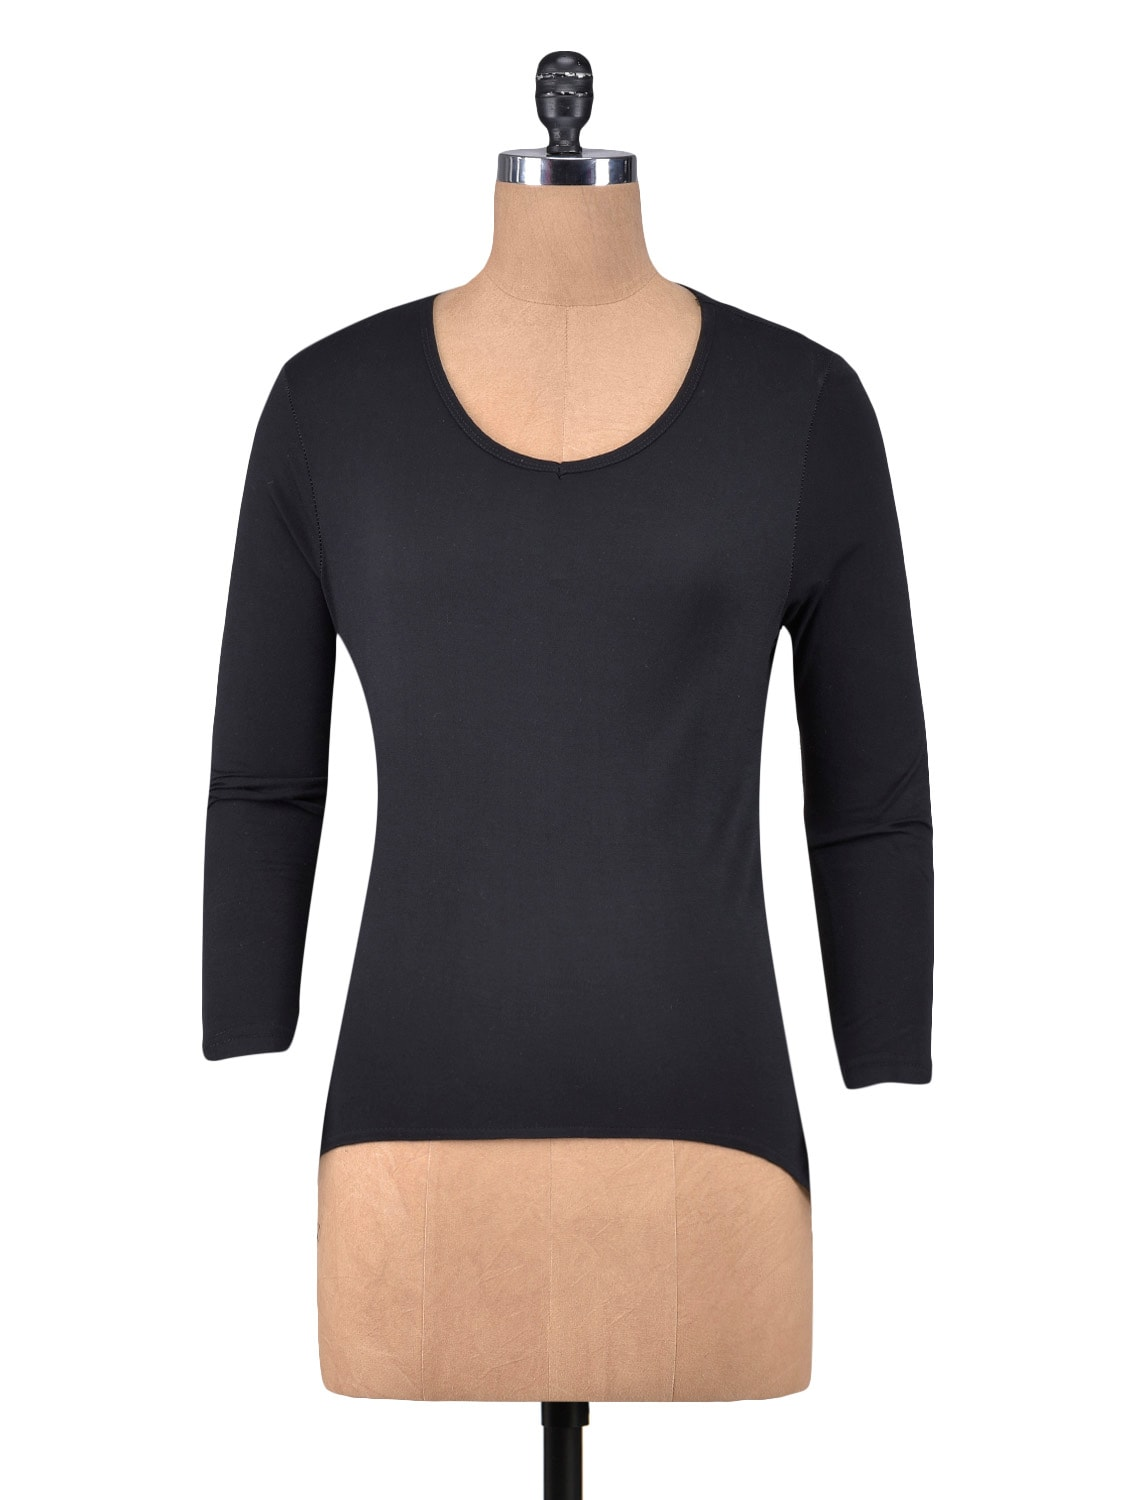 00a8cf6e Buy Black Viscose Plain Top for Women from Vvoguish for ₹425 at 39% off |  2019 Limeroad.com